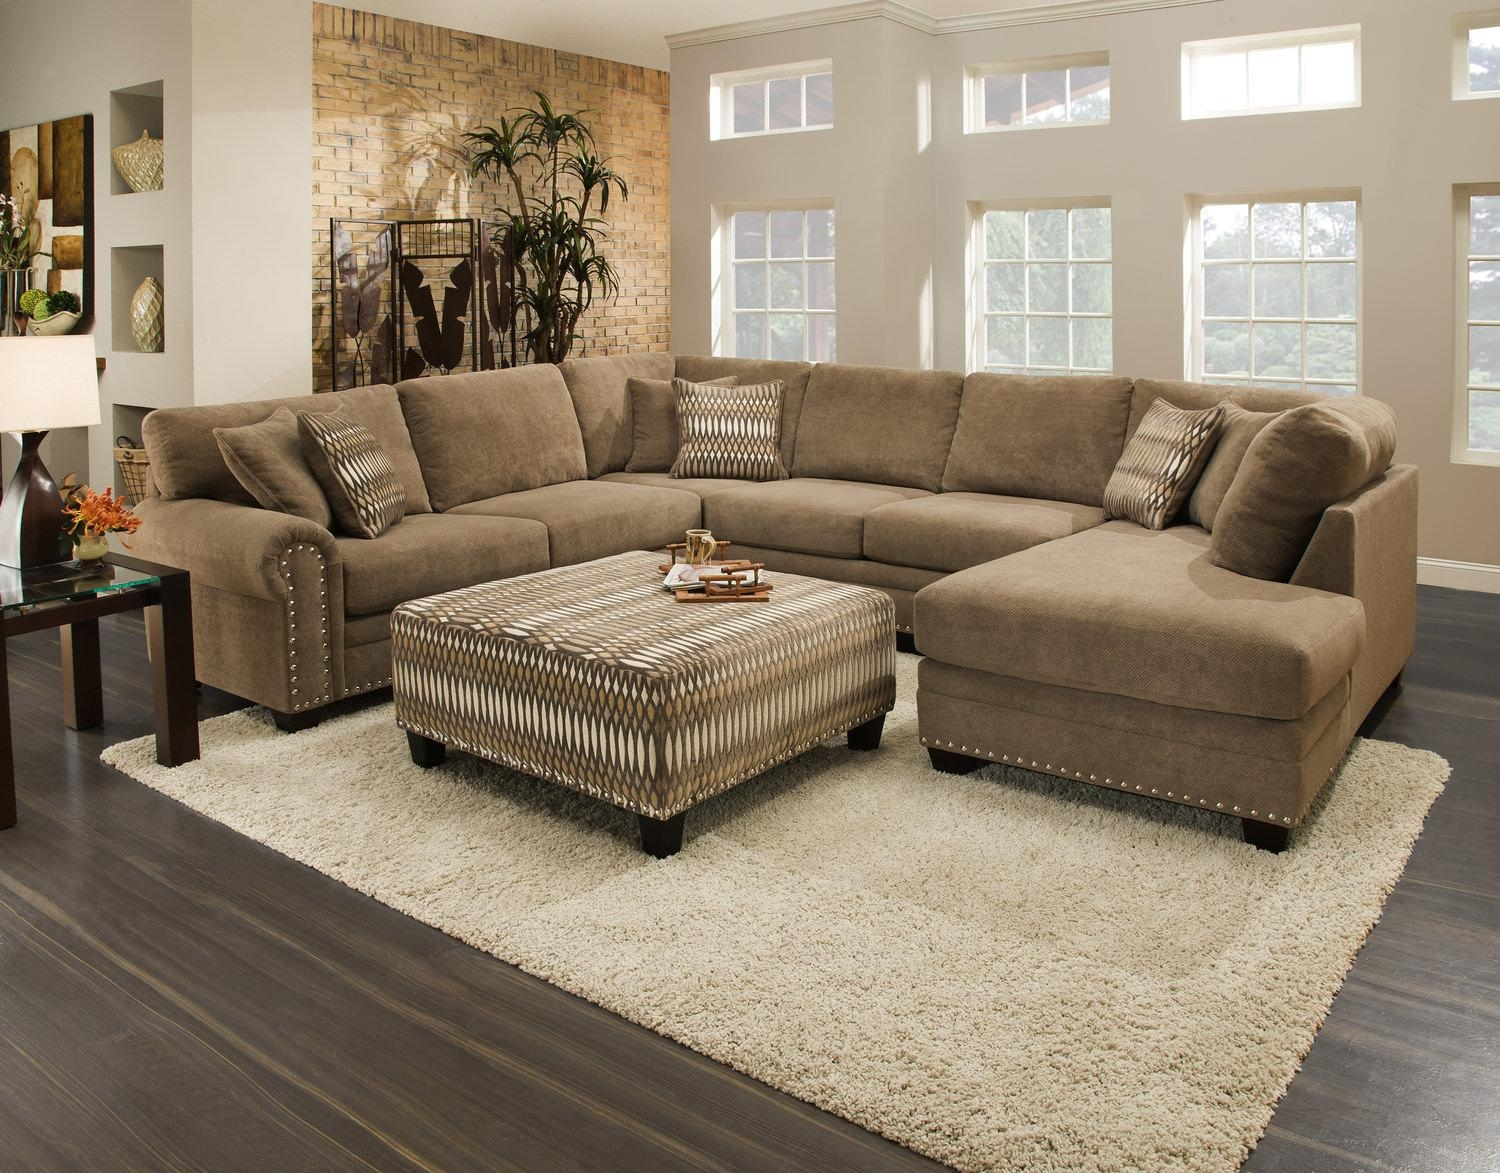 sealy living room furniture 20 inspirations sealy leather sofas sofa ideas 13635